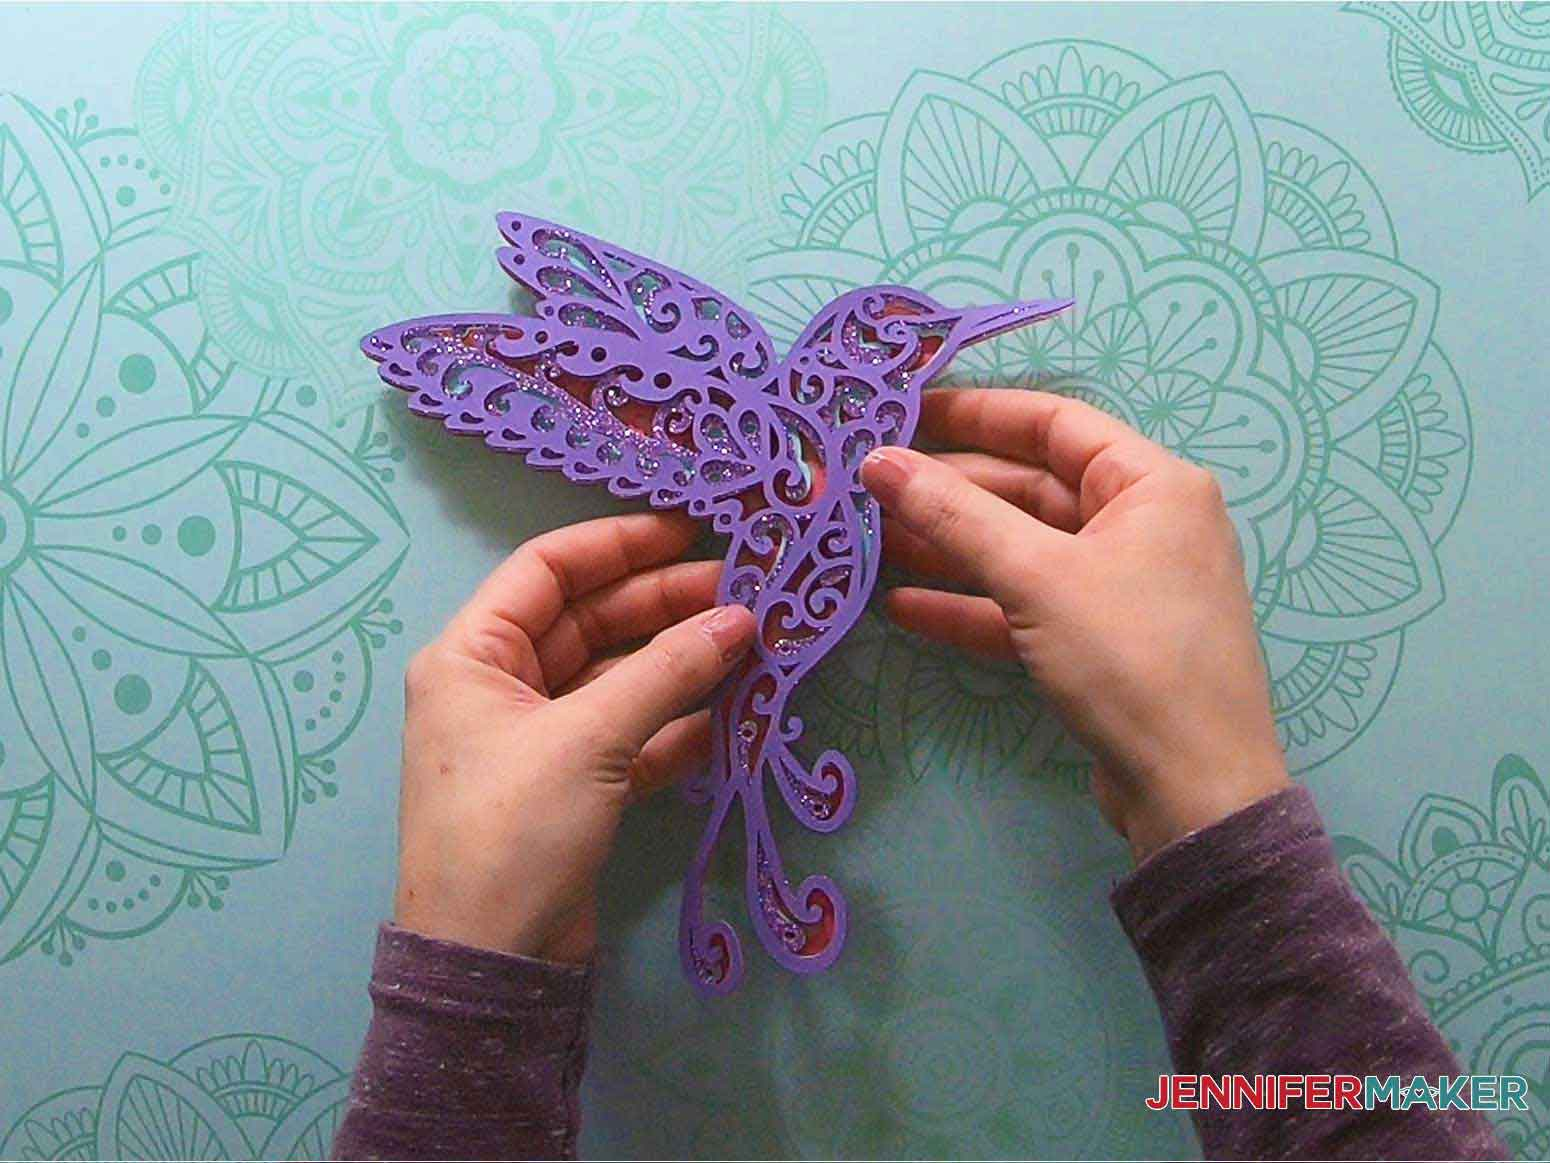 3d layered mandala hummingbird assembled project